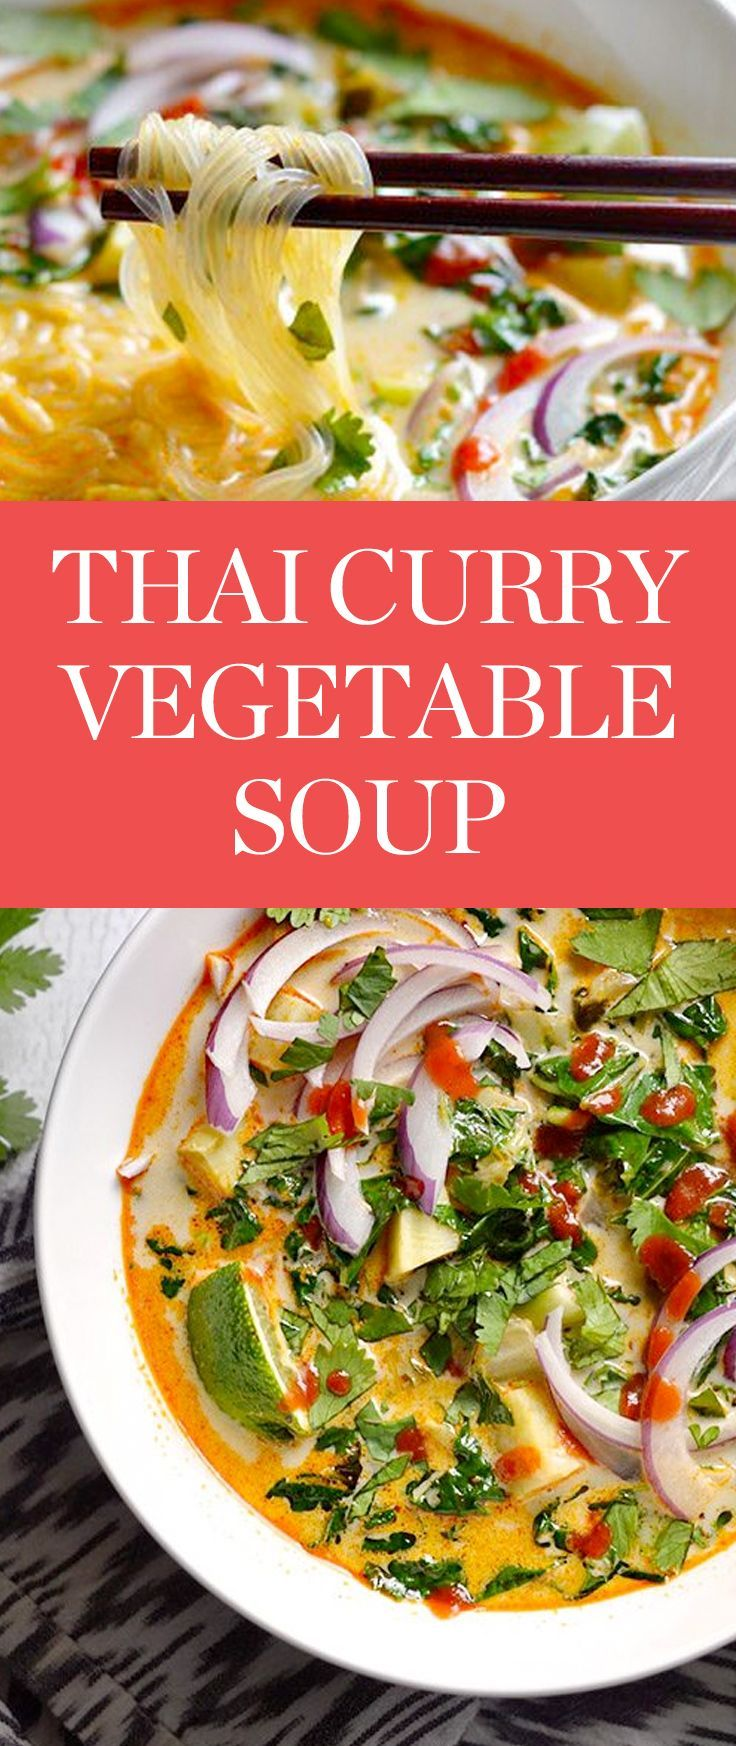 Get this thai curry vegetable soup recipe from budget bytes and get this thai curry vegetable soup recipe from budget bytes and more easy thai recipes here thai food recipes pinterest easy thai recipes forumfinder Choice Image